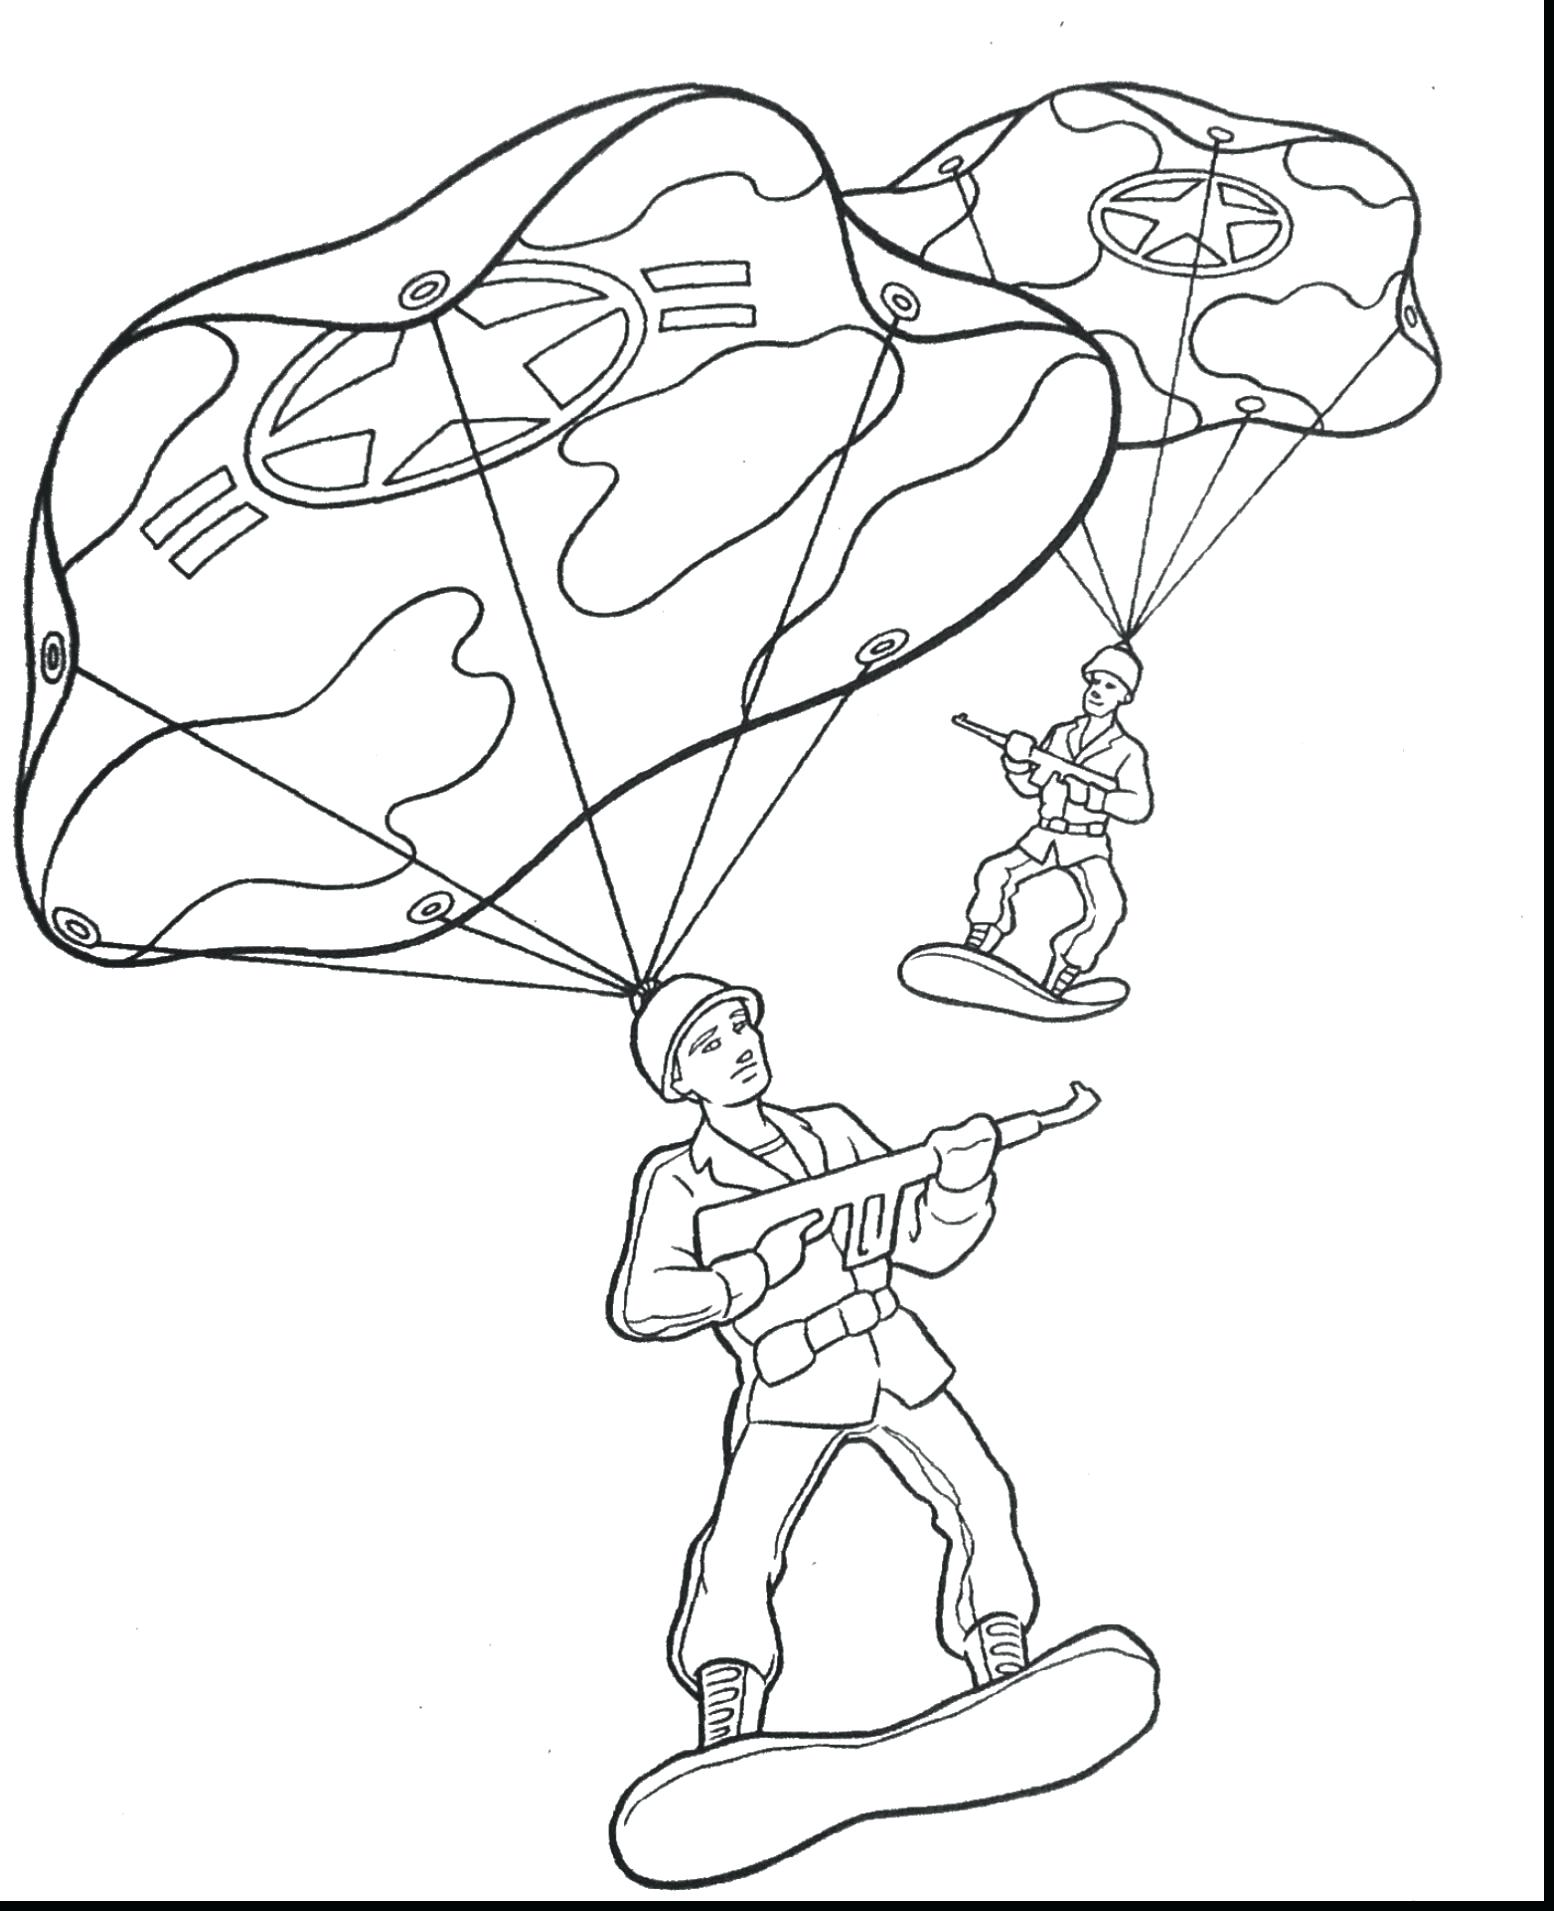 British Sol R Coloring Pages At Getcolorings